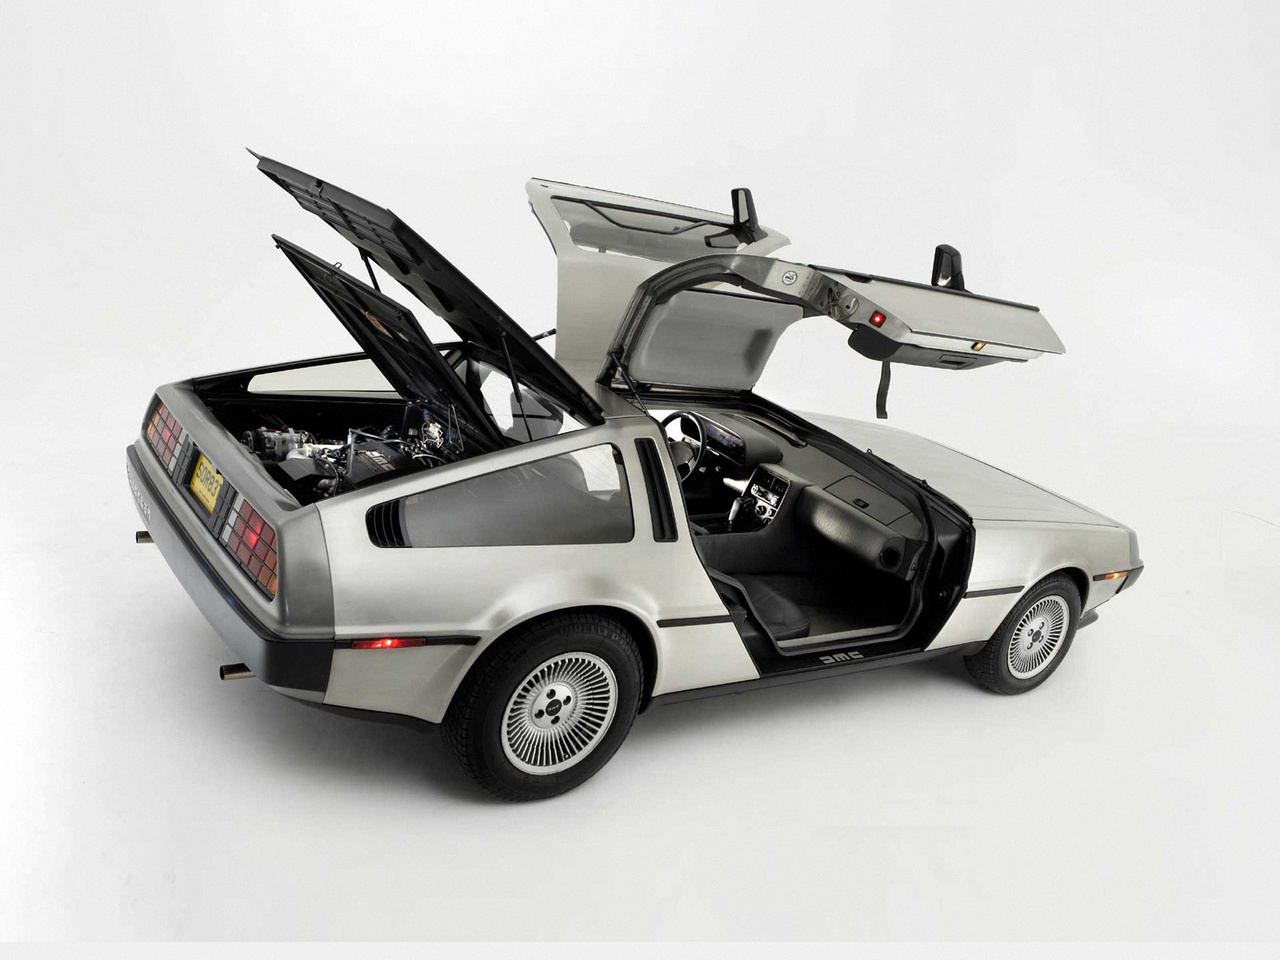 21 octobre 2015 le jour pour acheter la delorean de. Black Bedroom Furniture Sets. Home Design Ideas